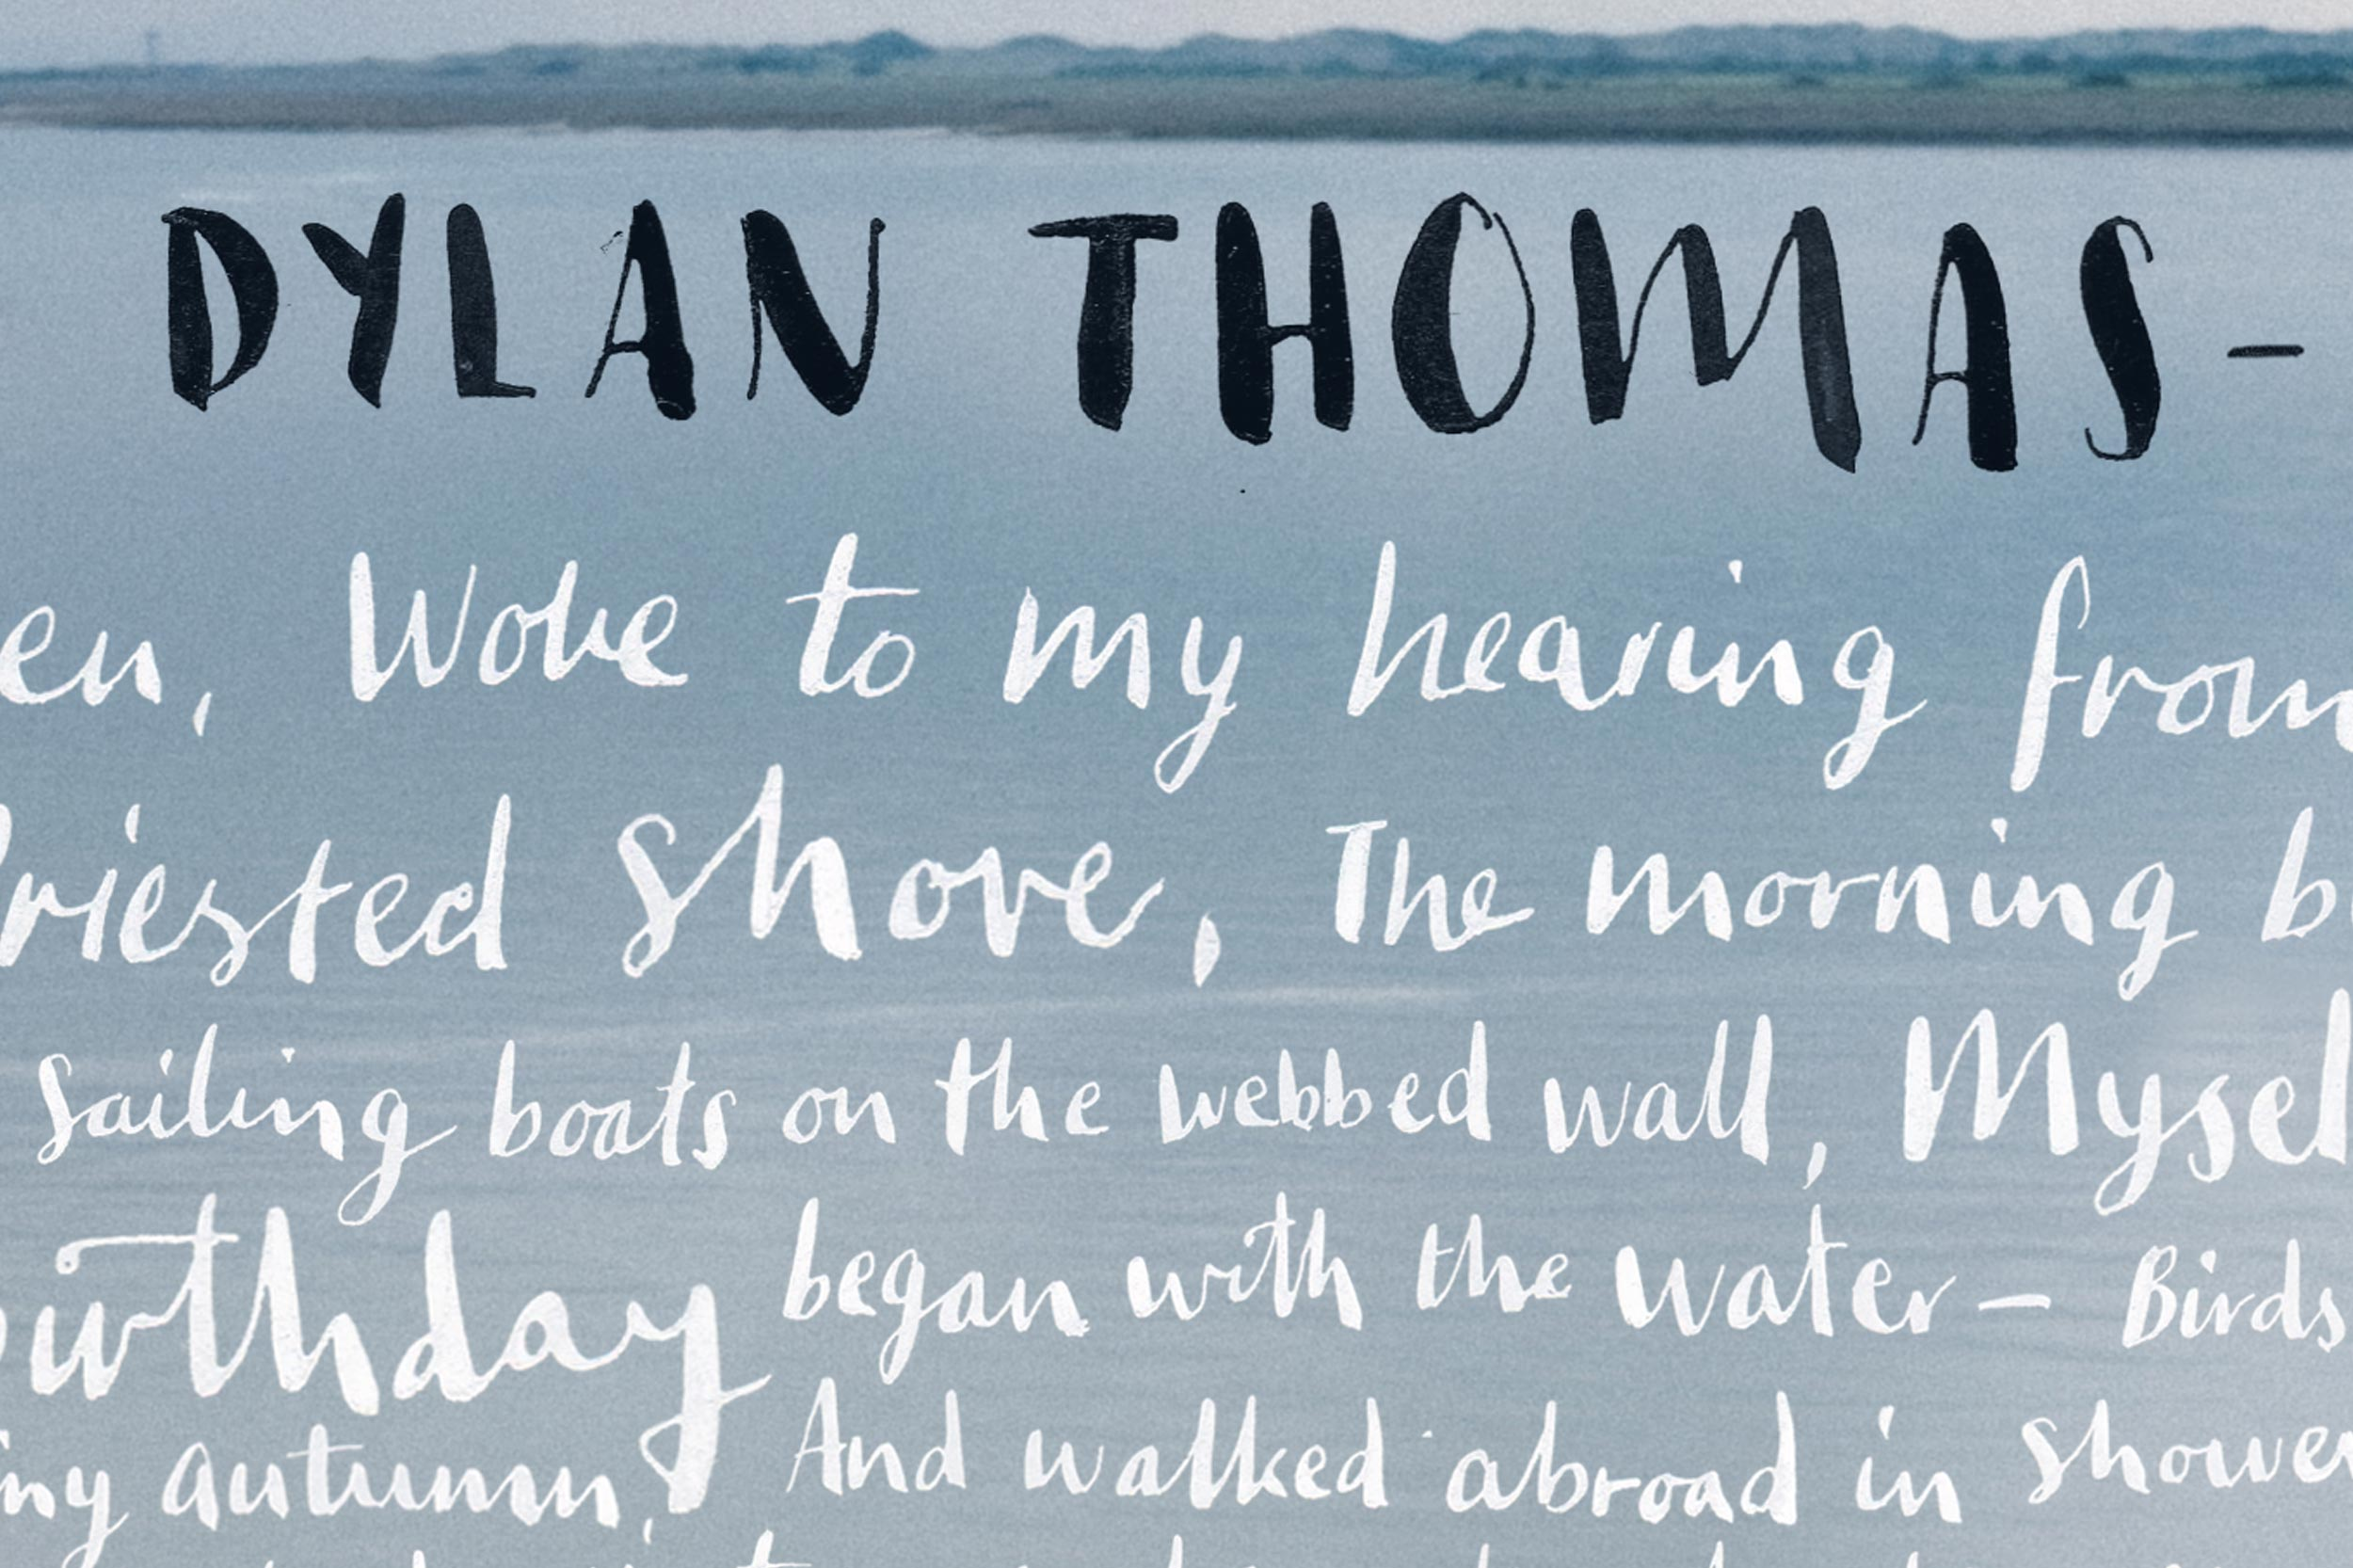 dylan thomas poem in october summary